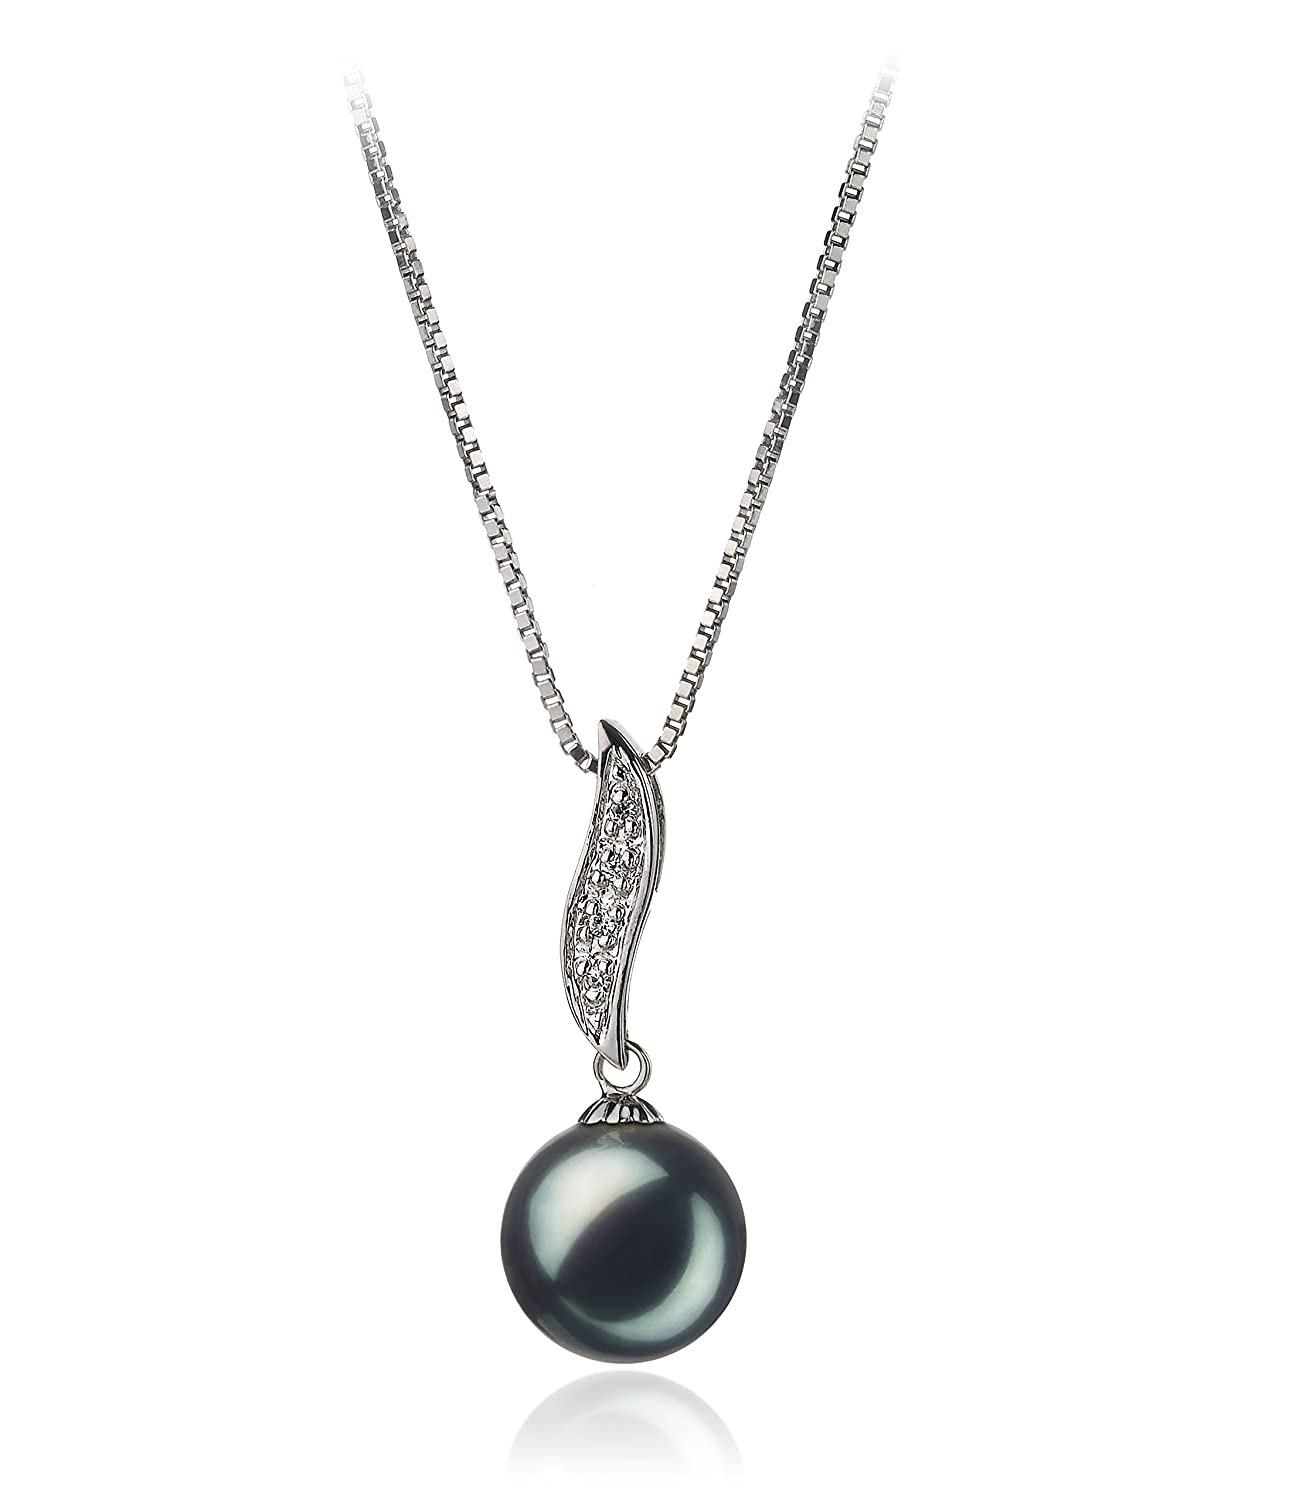 Black 9-10mm AA Quality Freshwater 925 Sterling Silver Cultured Pearl Pendant